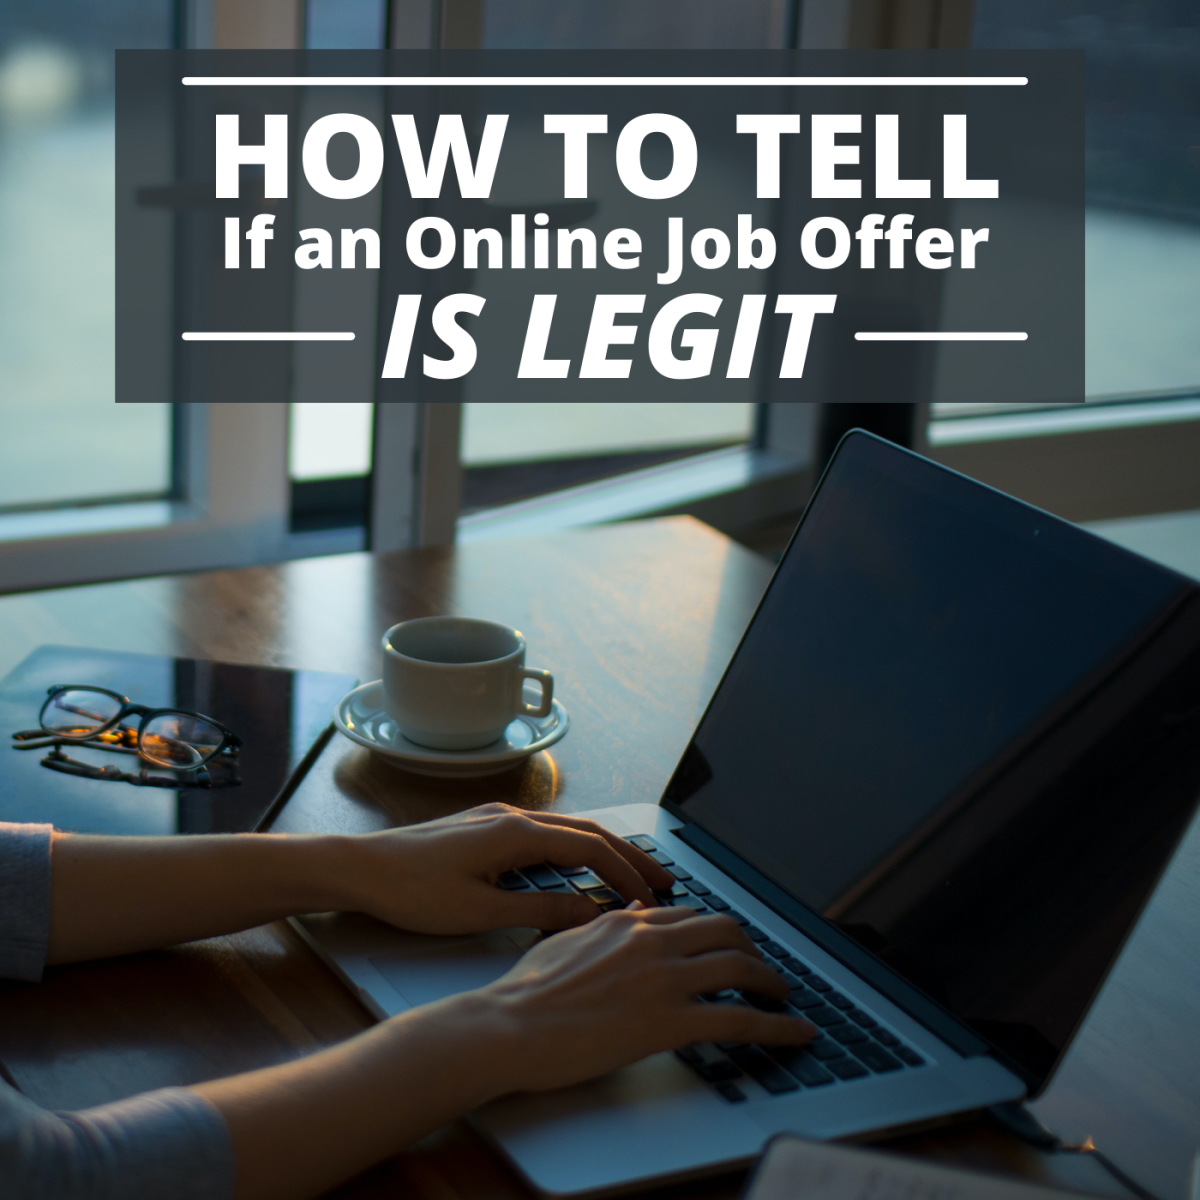 finding jobs, freelance work, and side hustles online can be rewarding, but there are plenty of scammers out there ready to take advantage of the unscrupulous.